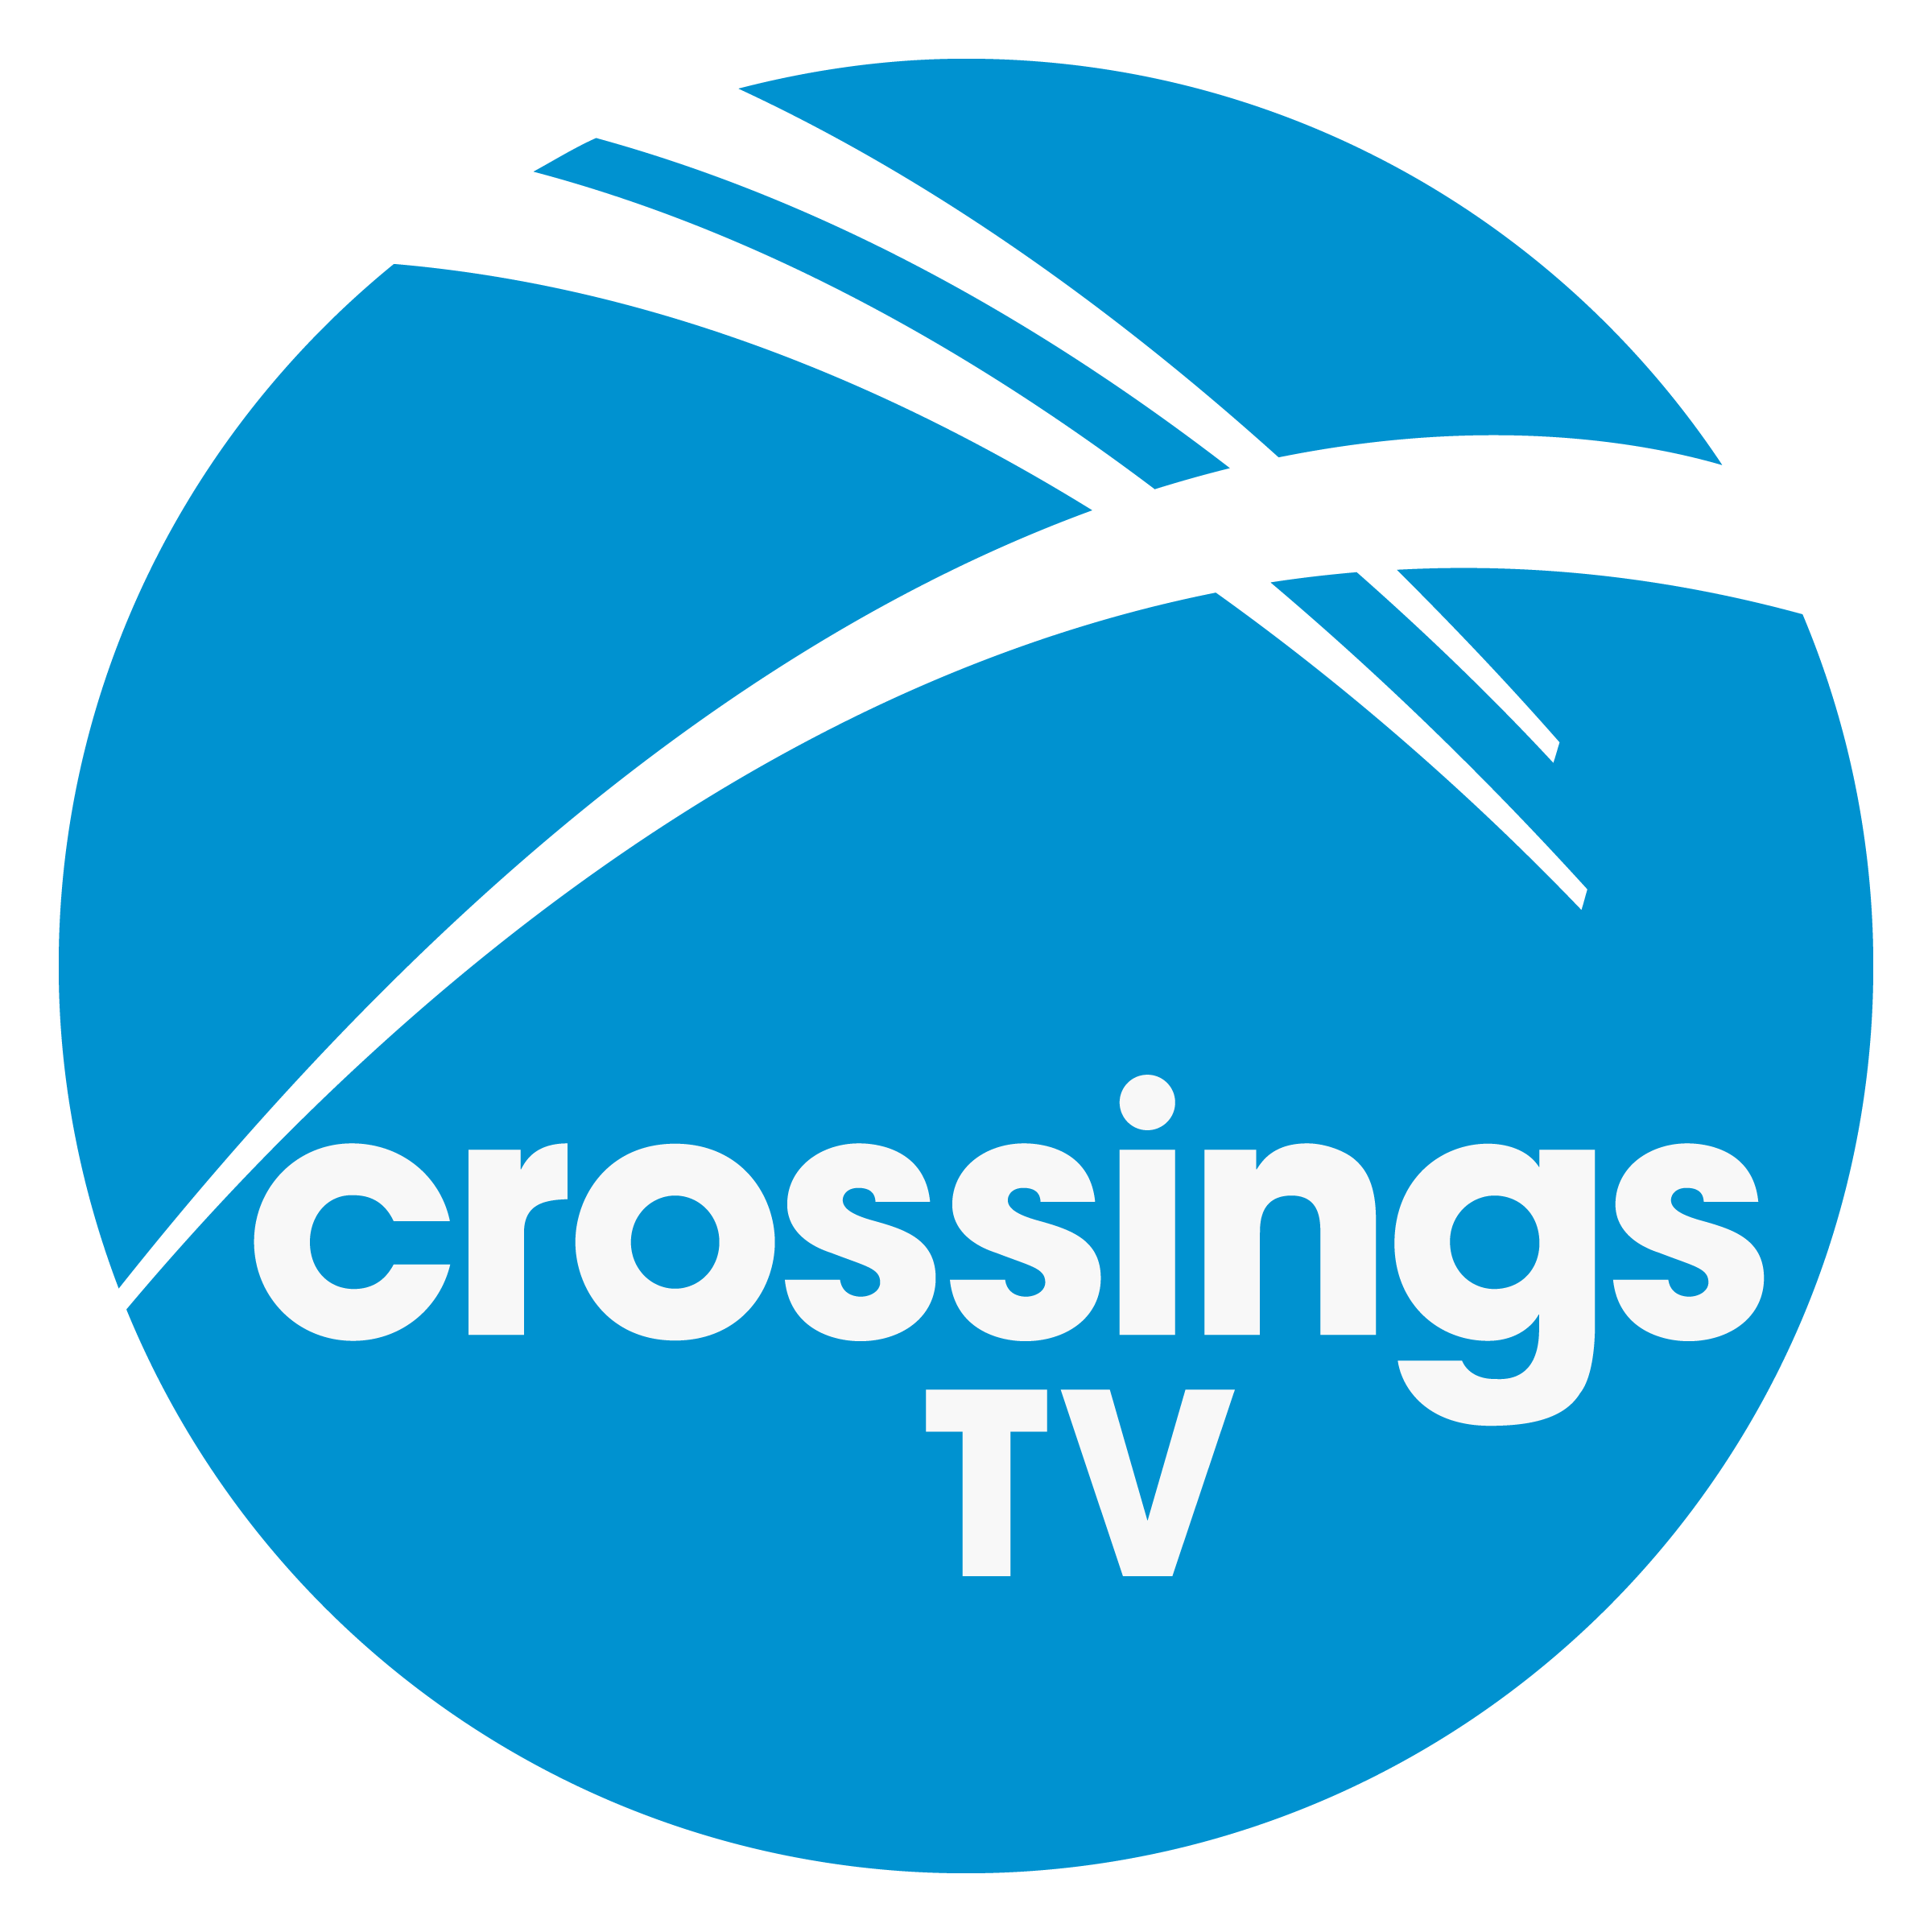 KBTV Crossings TV